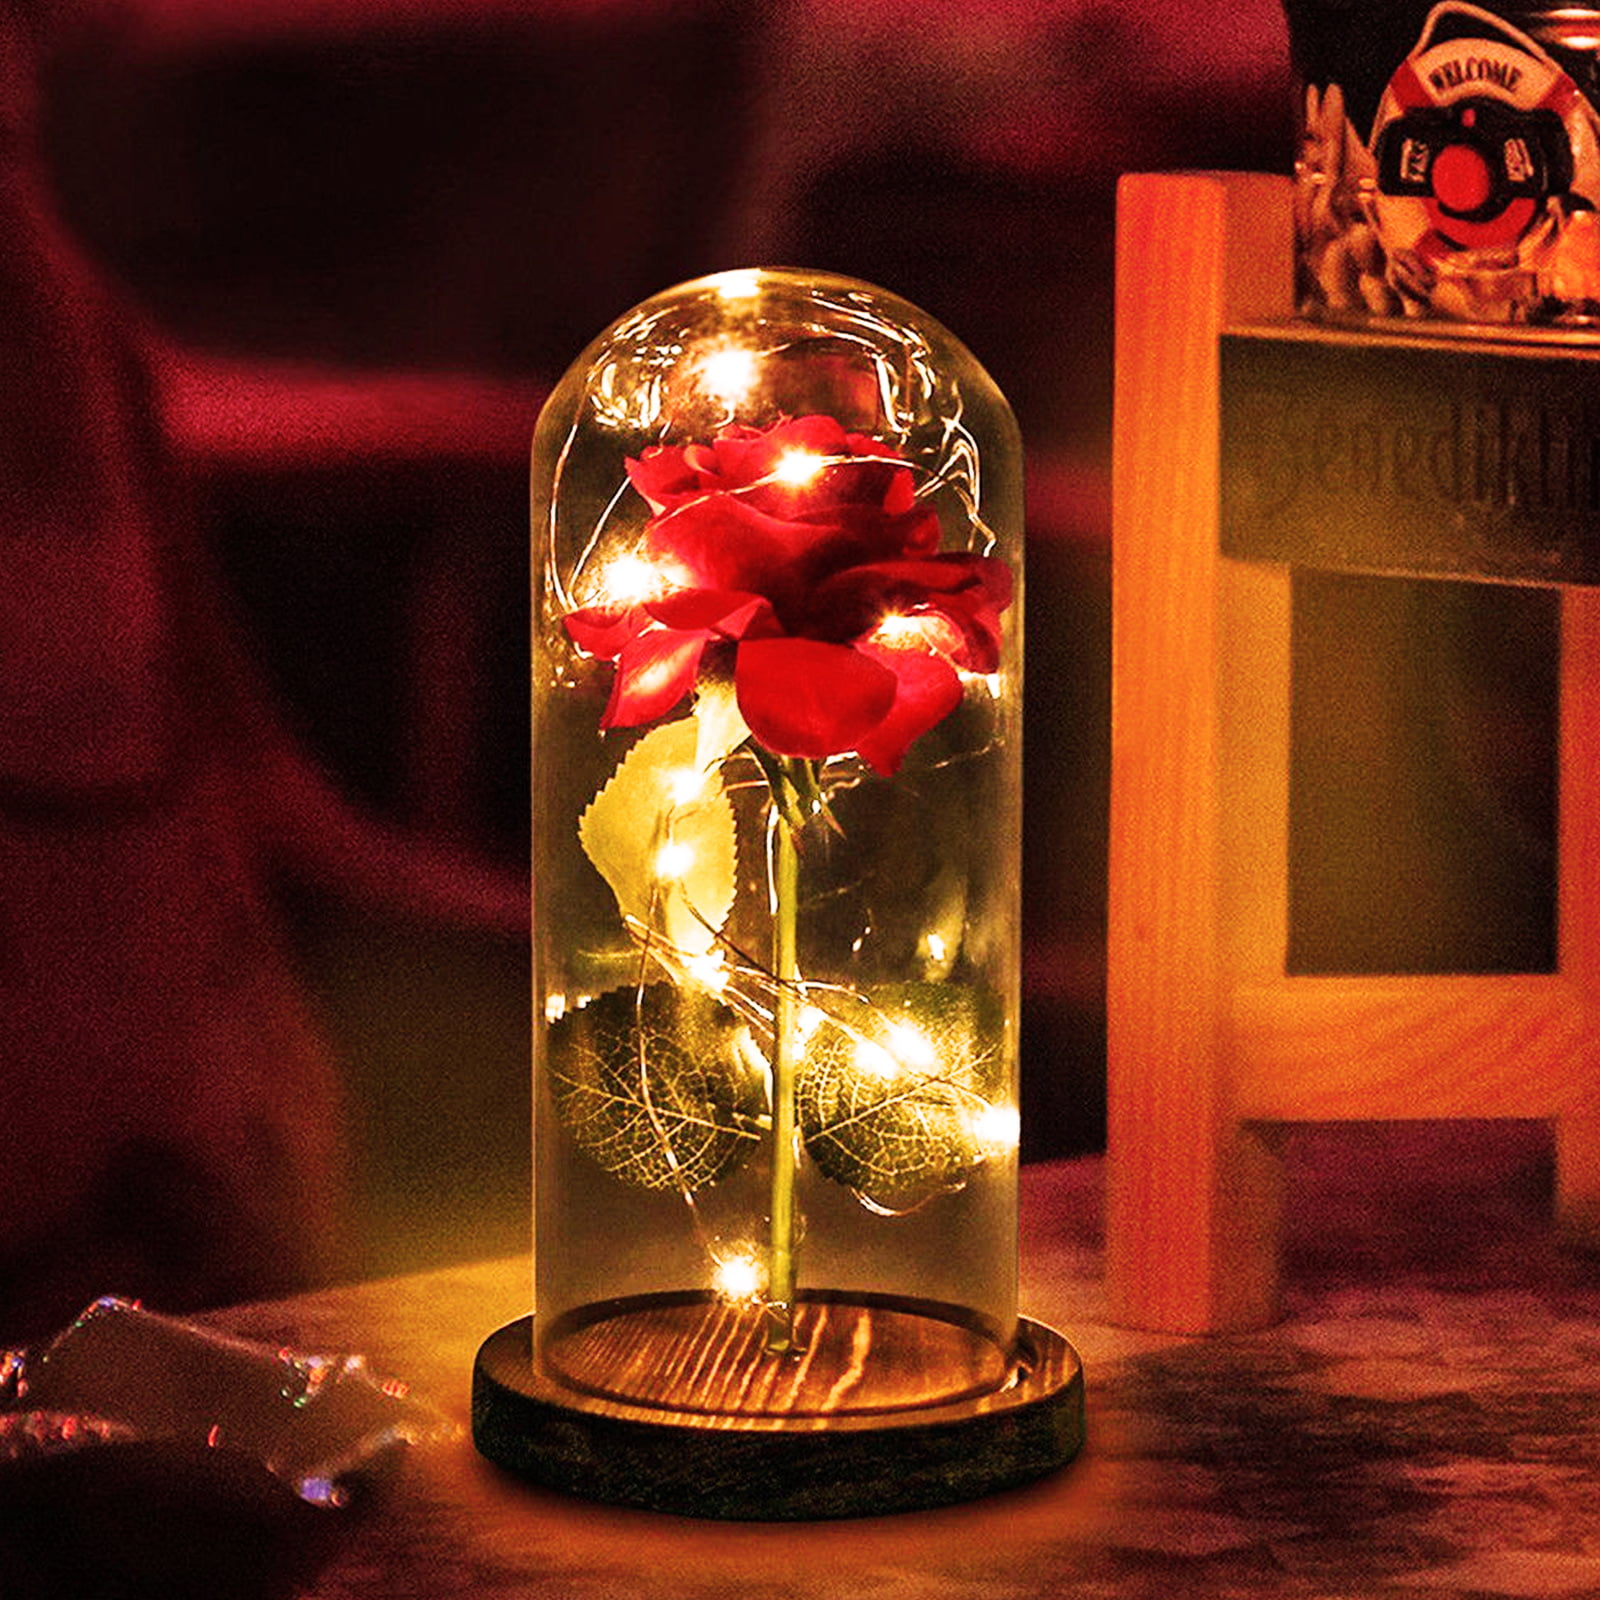 Beauty And The Beast Rose Decor Led Light Battery Powered Usb Powered With Remote Control Light With Fallen Petals In Glass Dome Gift For Mothers Day Valentine S Day Anniversary Birthday Walmart Com